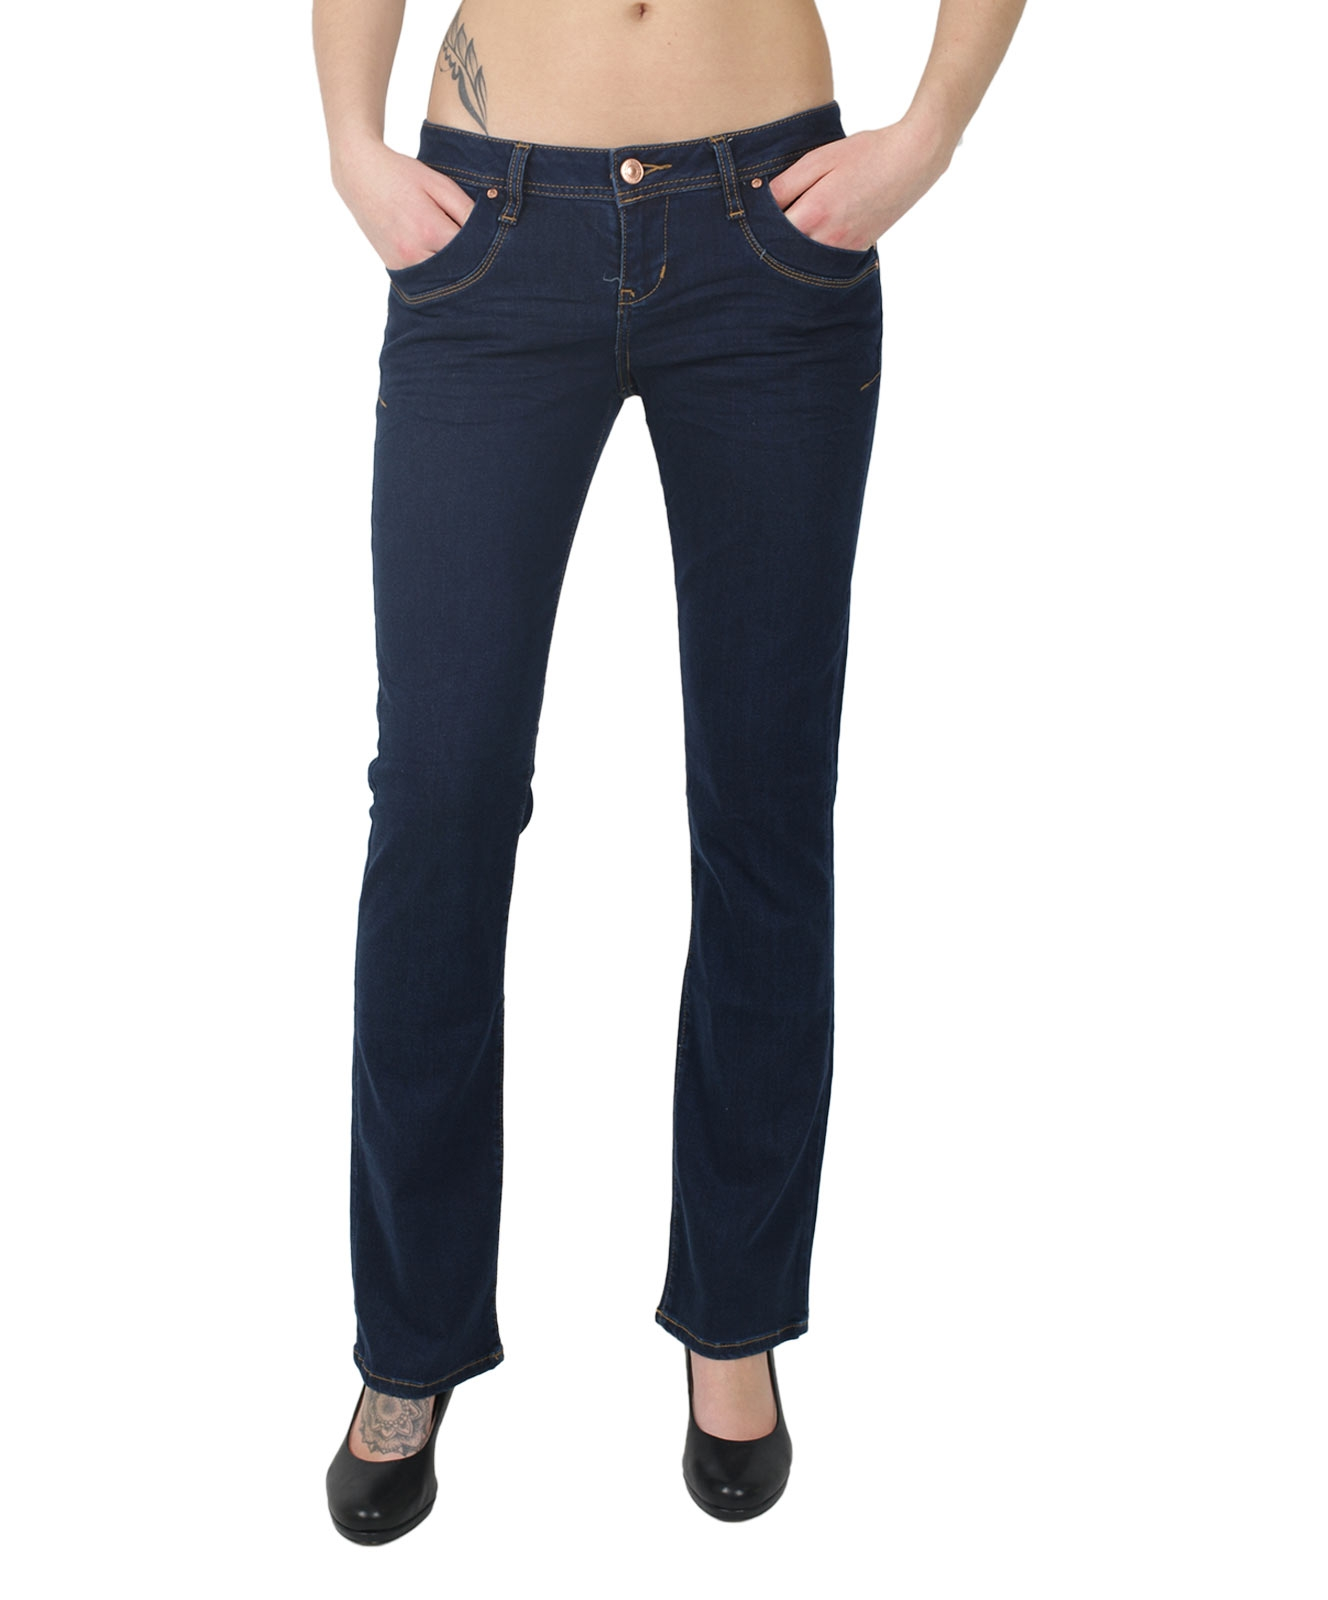 Hosen - LTB Bootcut Jeans Valerie in Mila Wash  - Onlineshop Jeans Meile